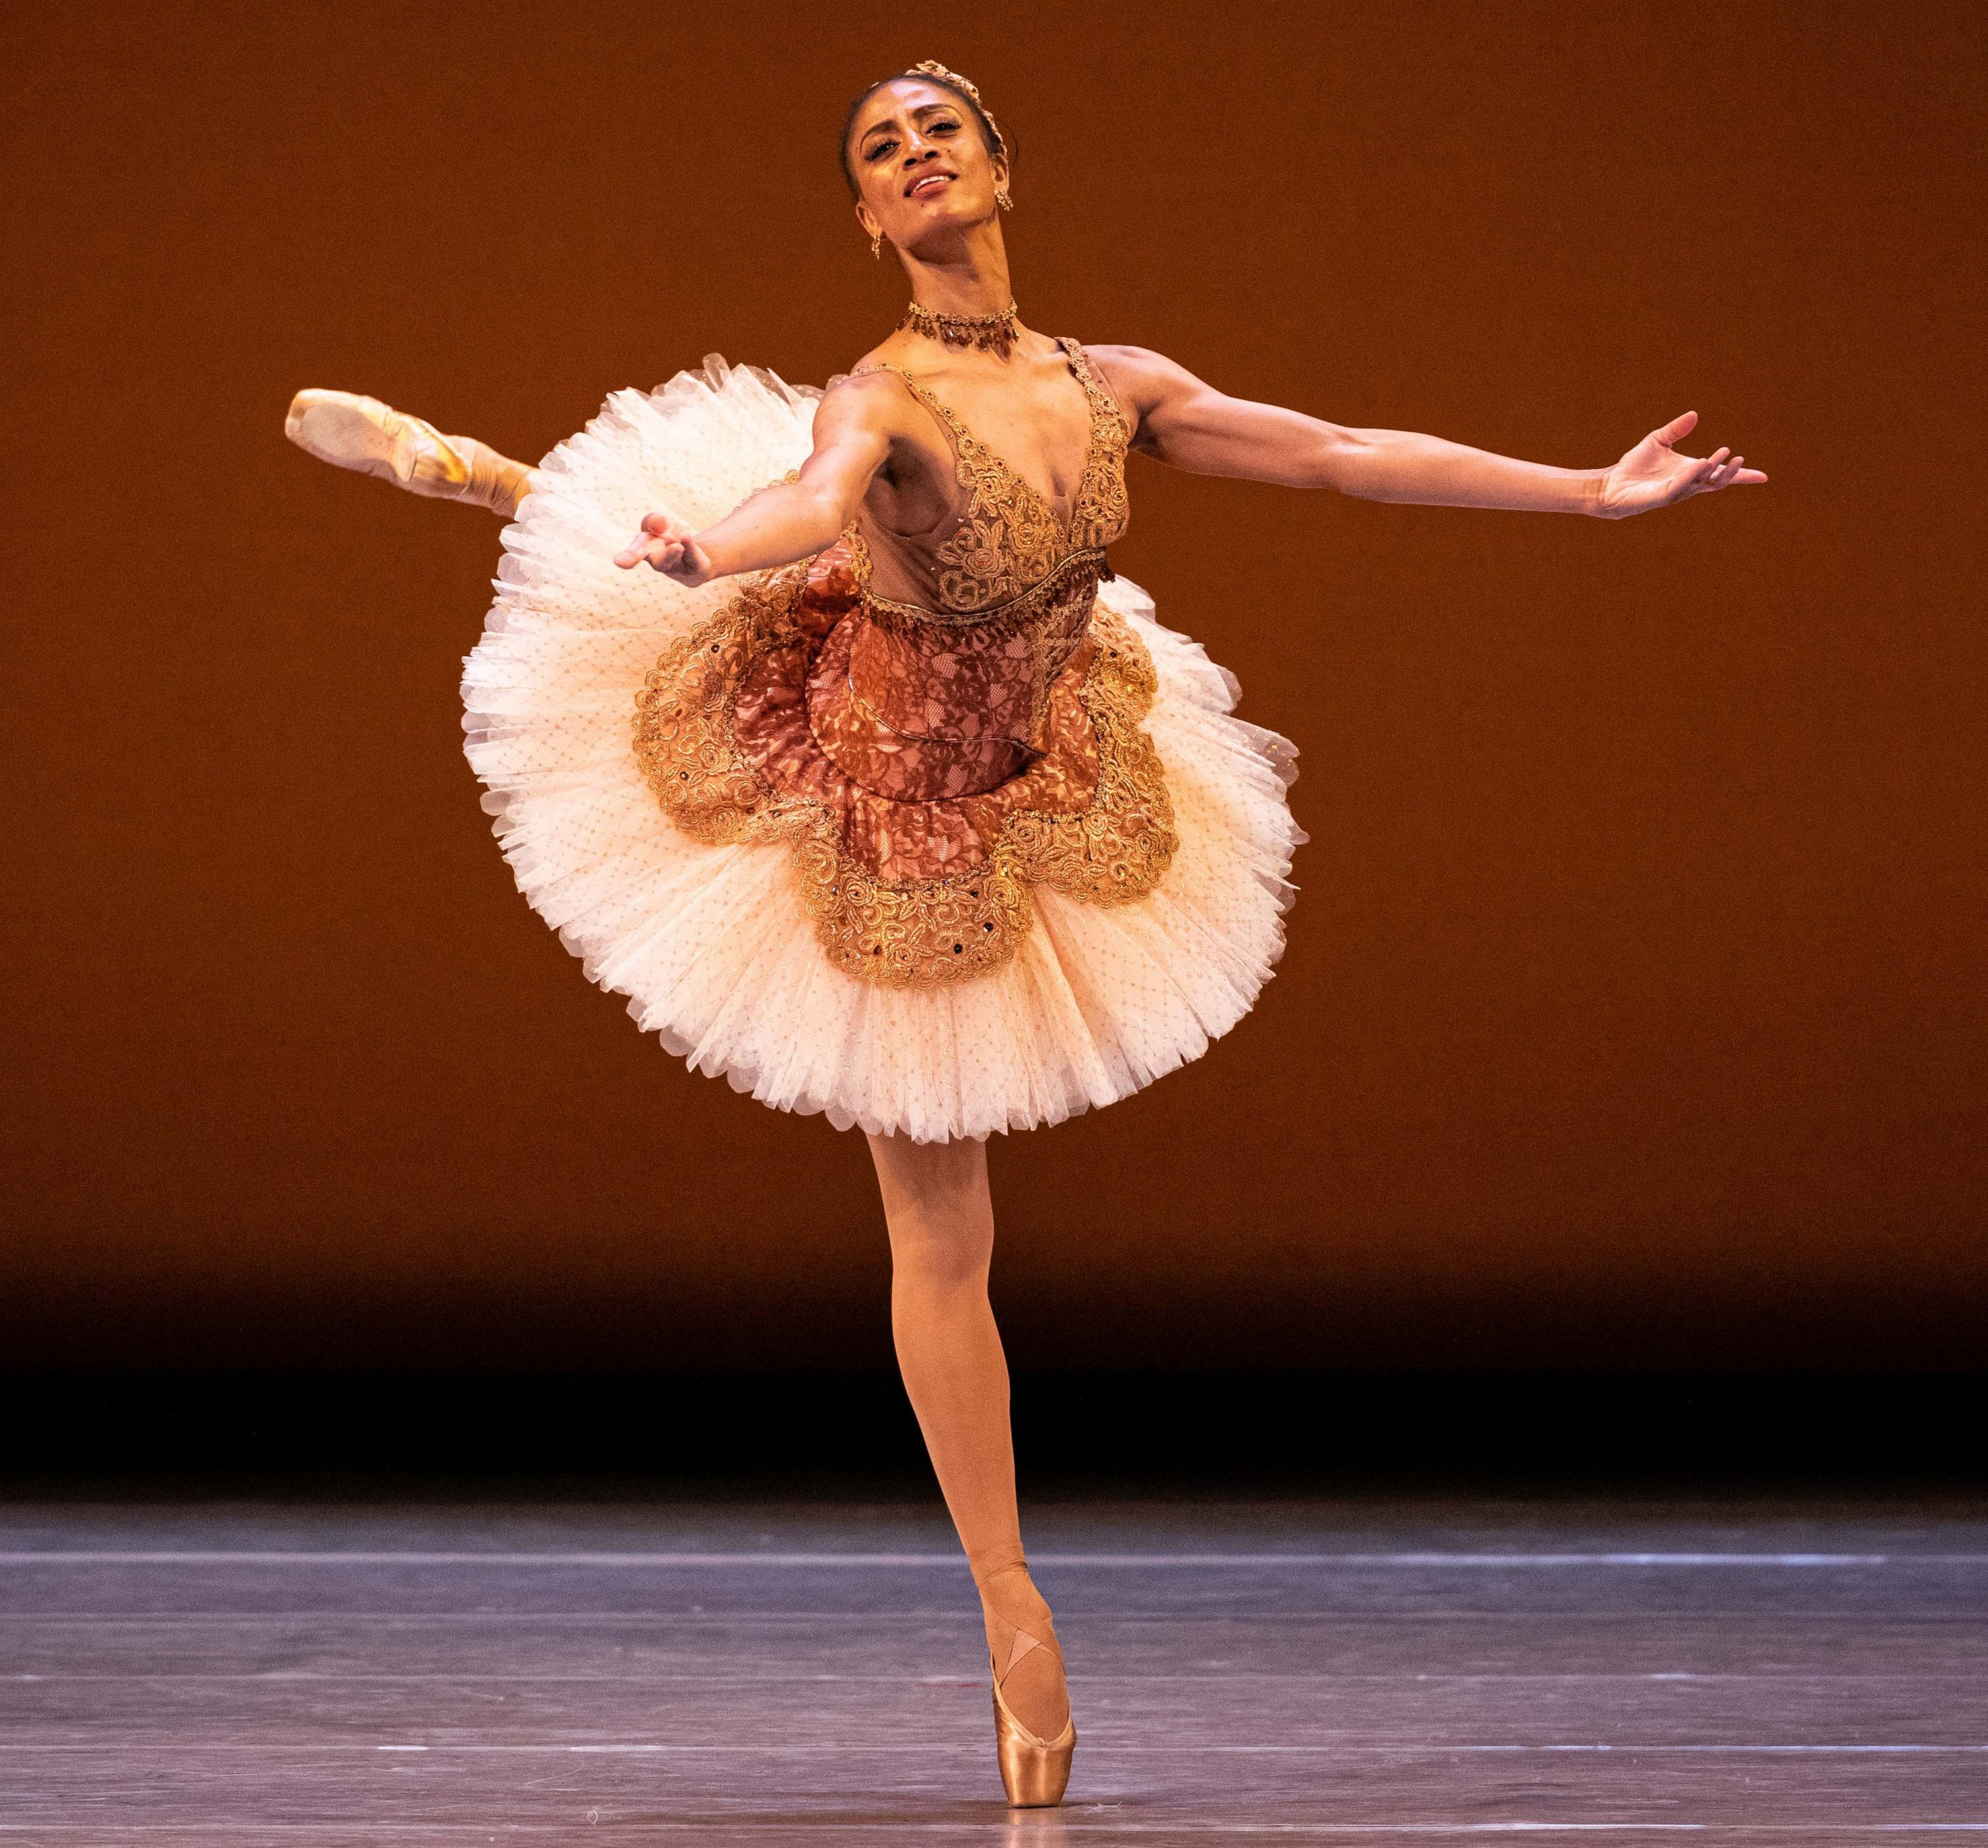 A photo of a female ballerina balancing on a single foot on pointe.